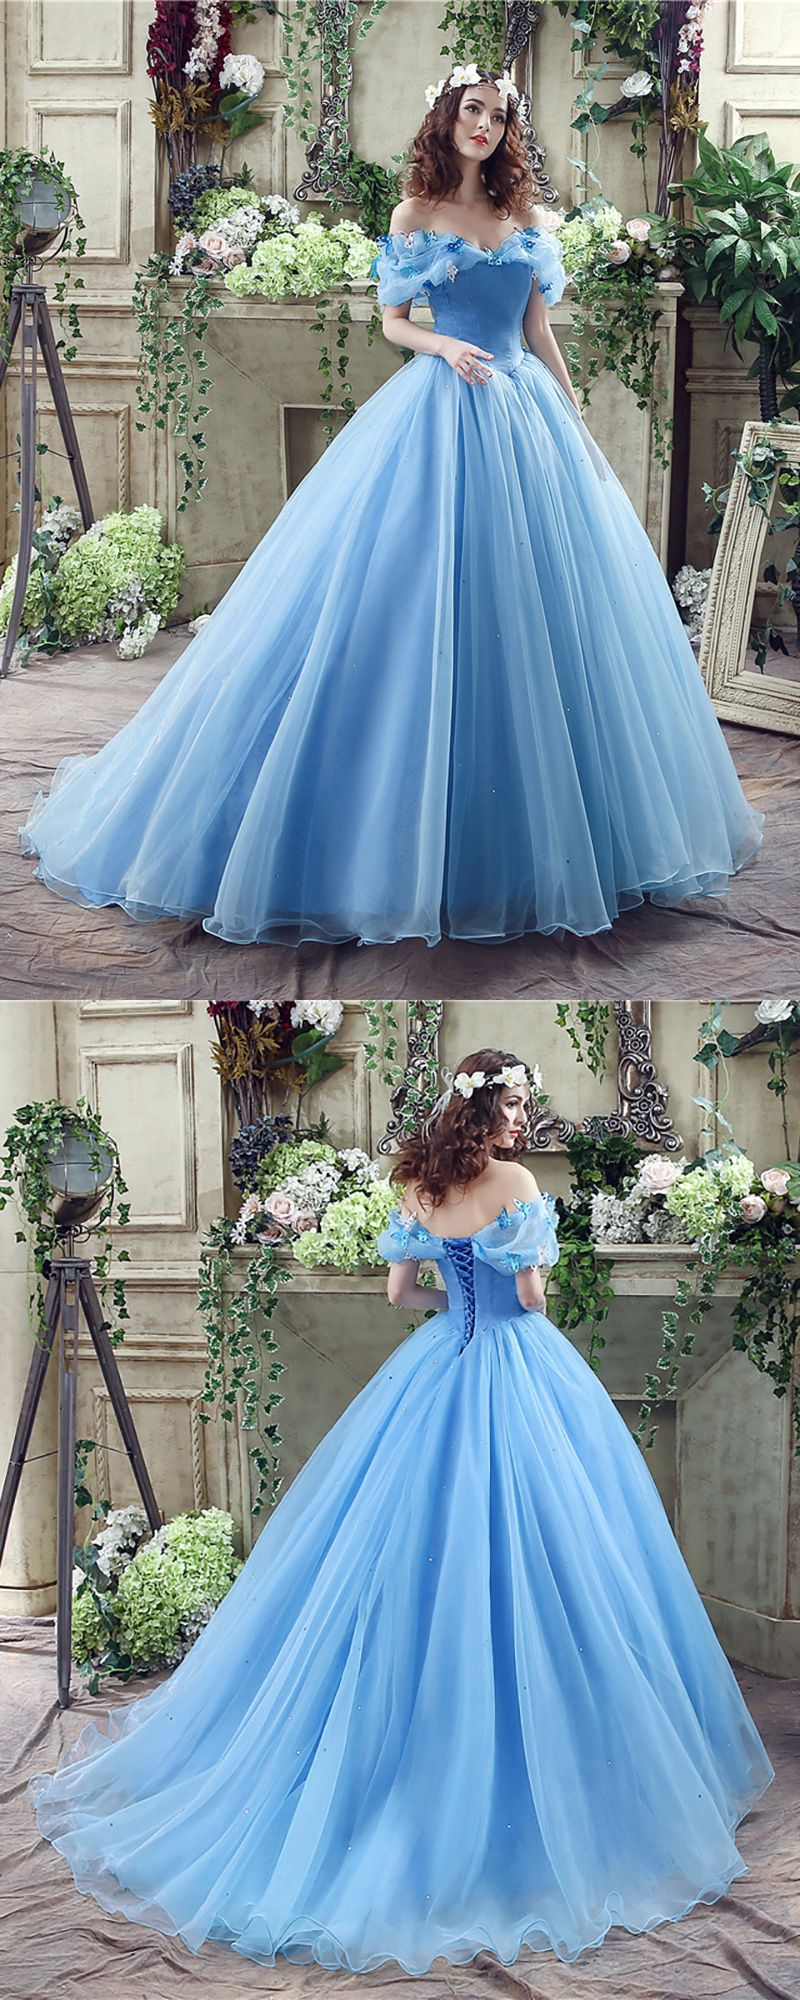 Non traditional blue cinderella princess bridal gowns with off